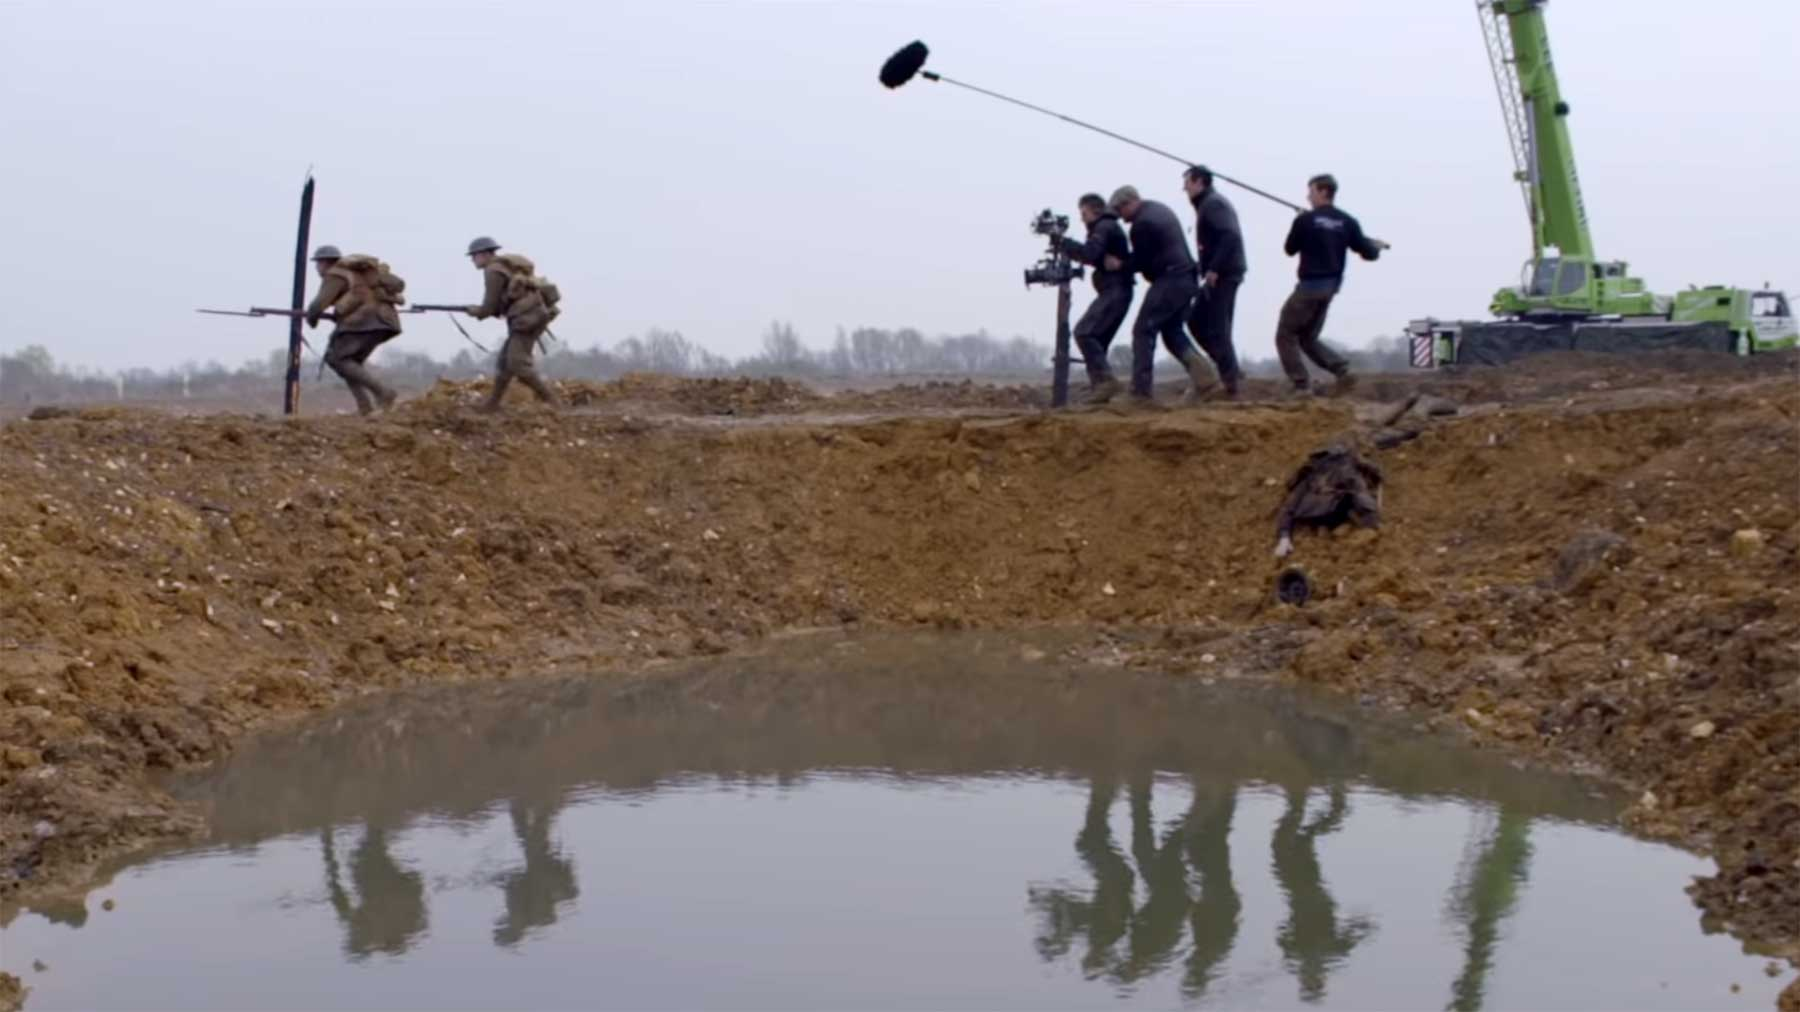 1917-behind-the-scenes-trailer-one-shot